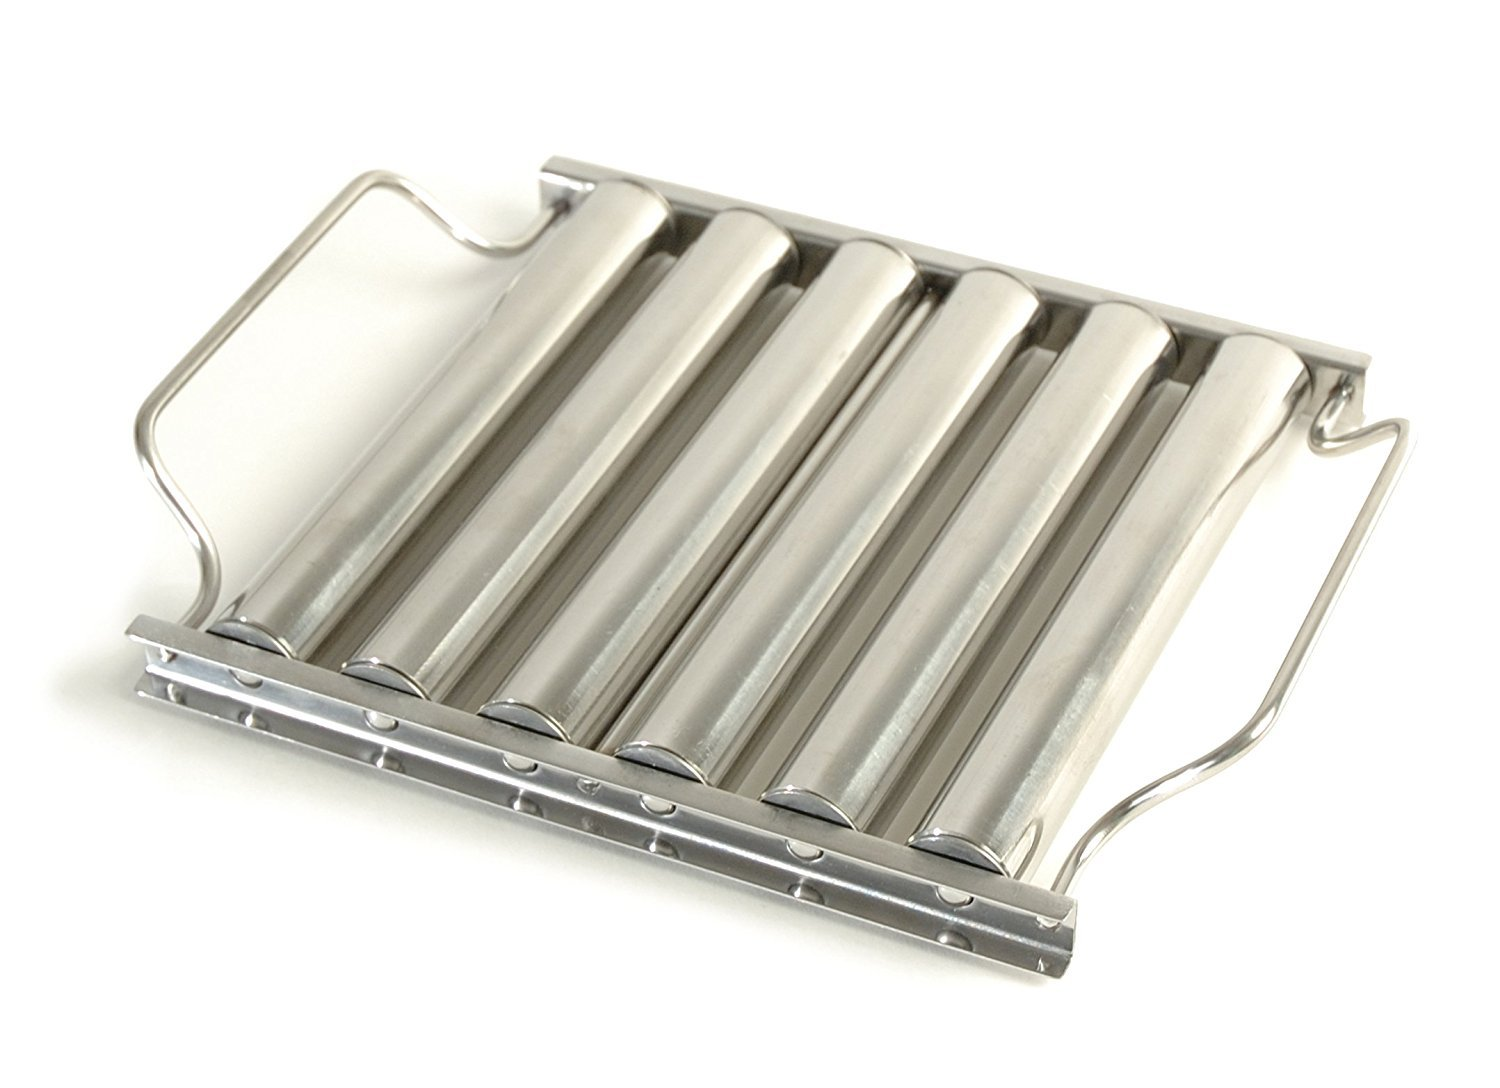 Charcoal Companion Stainless Hot Dog Roller Rack Best of Barbeque CC3039